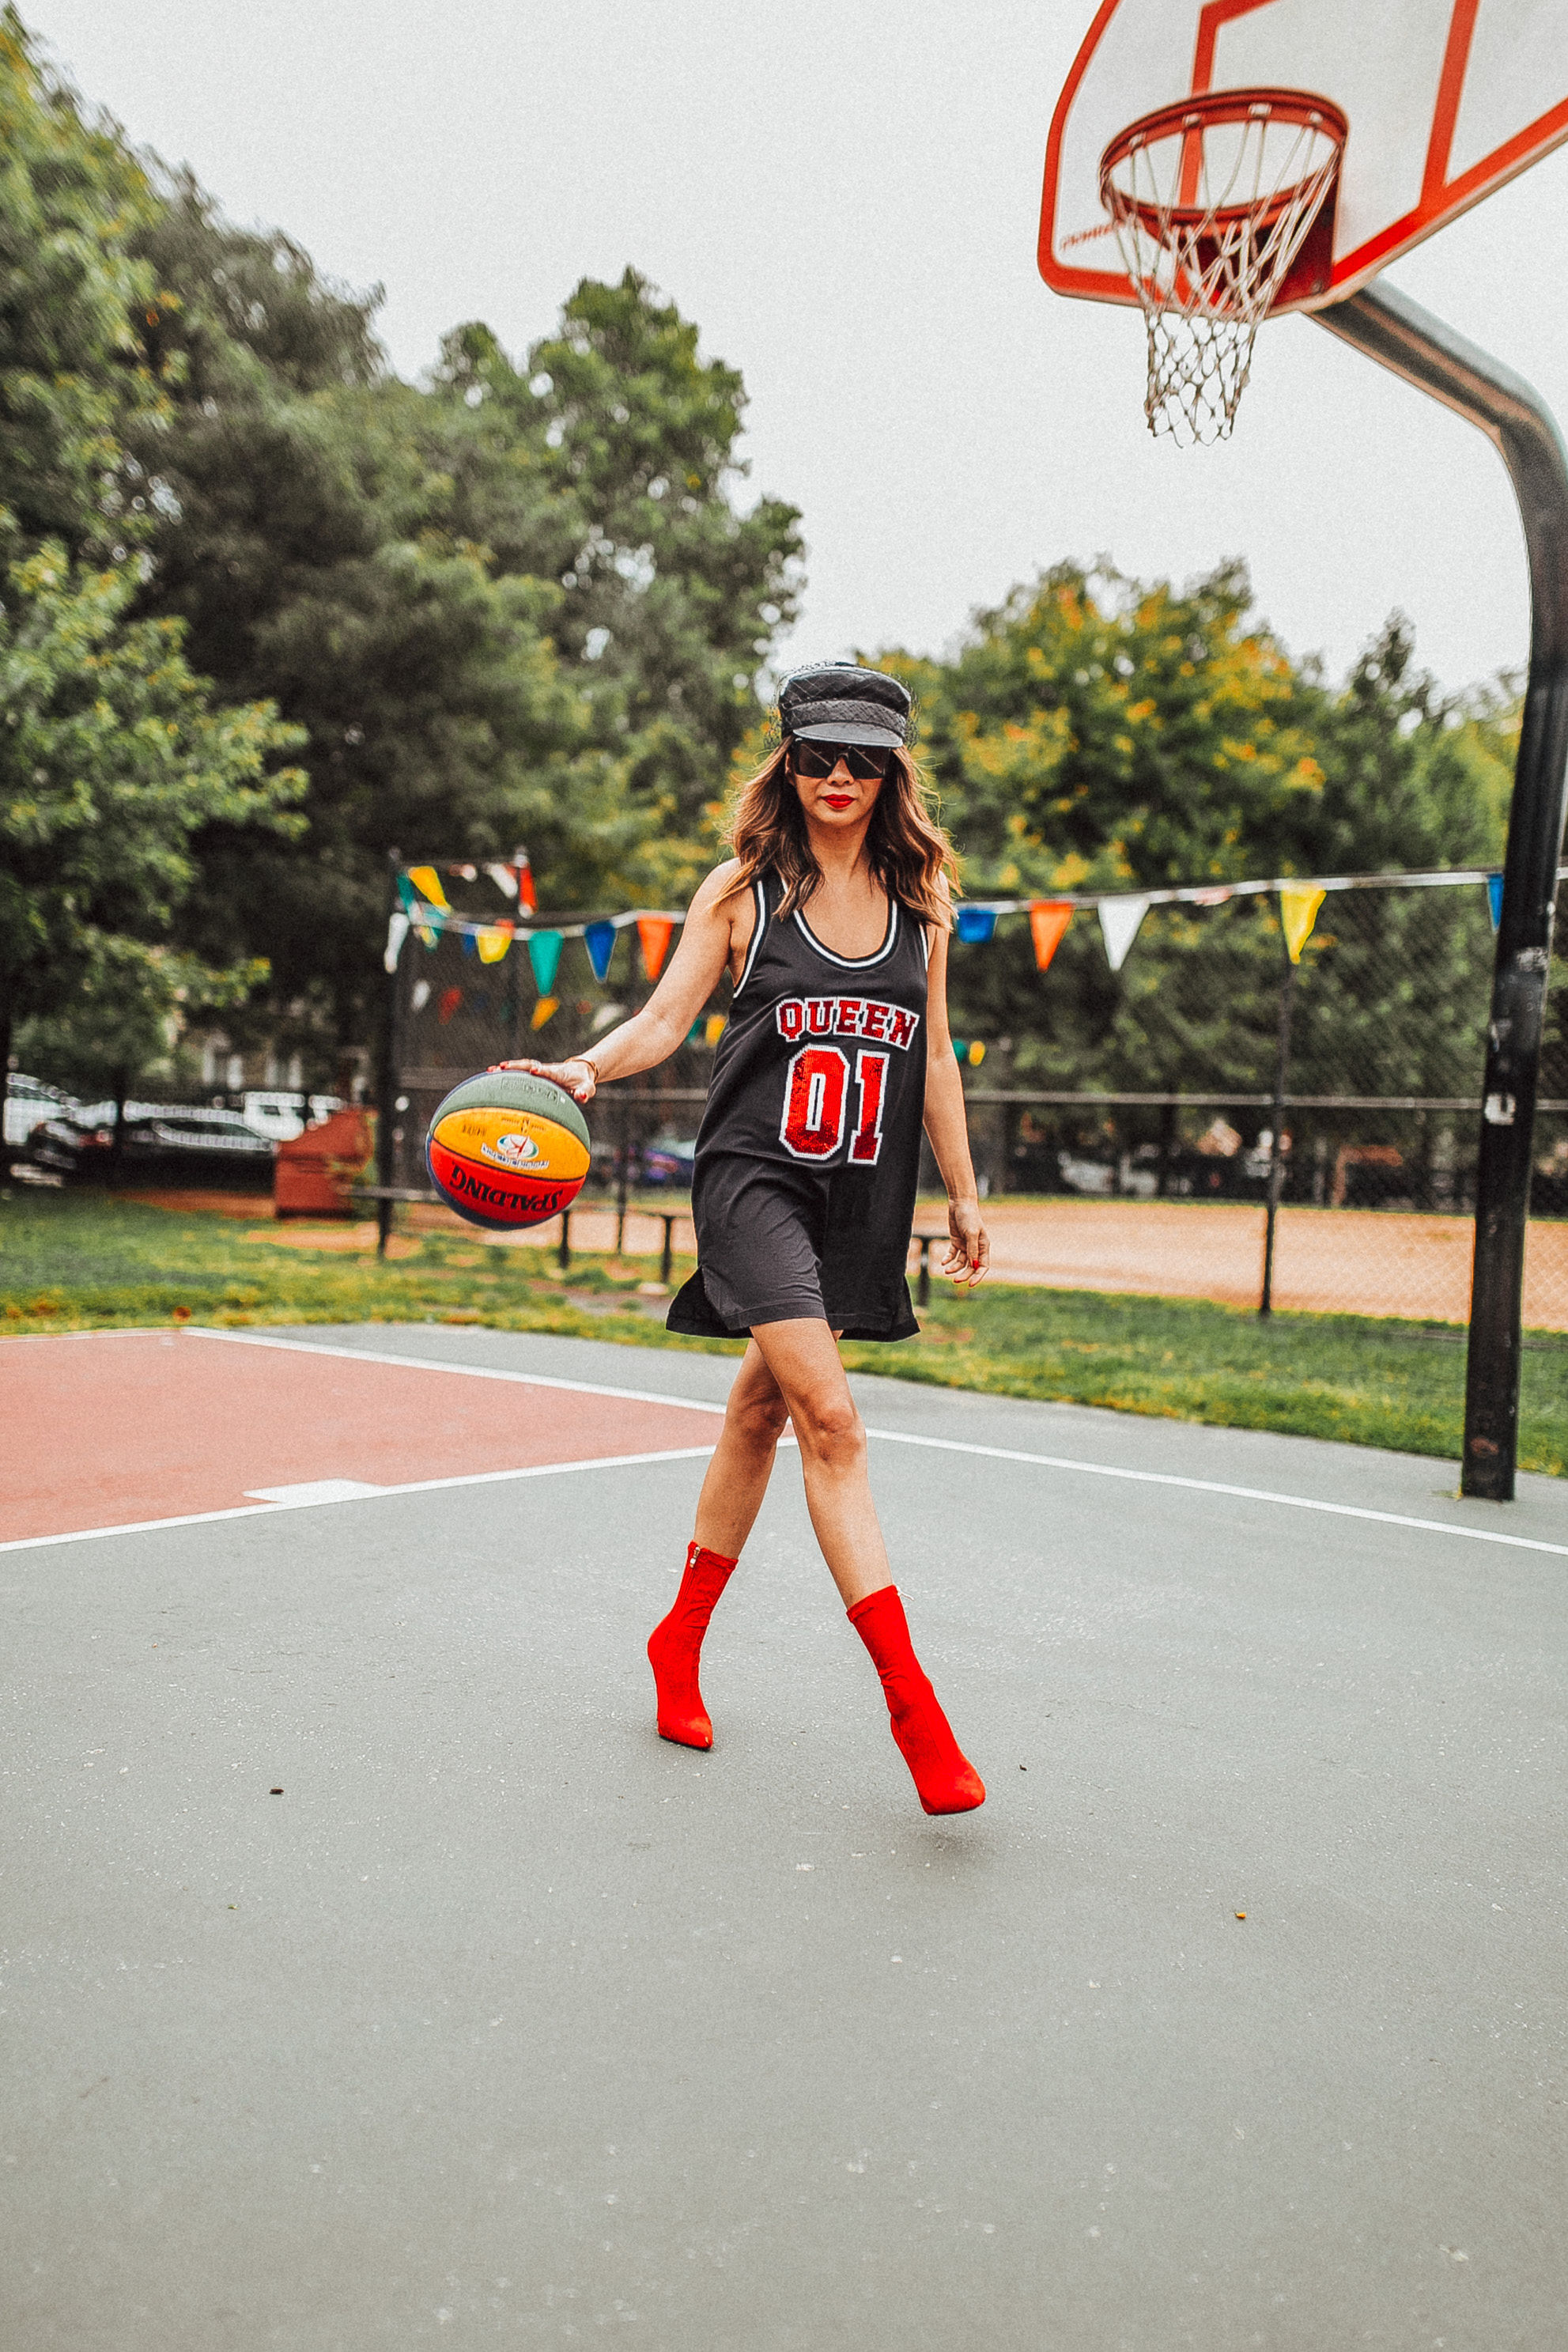 Juggling life, how to balance life, life quote, Alice and Olivia jersey dress, Sequin Queen Jersey Dress, Basketball instagram photo, Jennifer Worman, Sequin Basketball Jersey Dress, Chicago Lifestyle Blogger